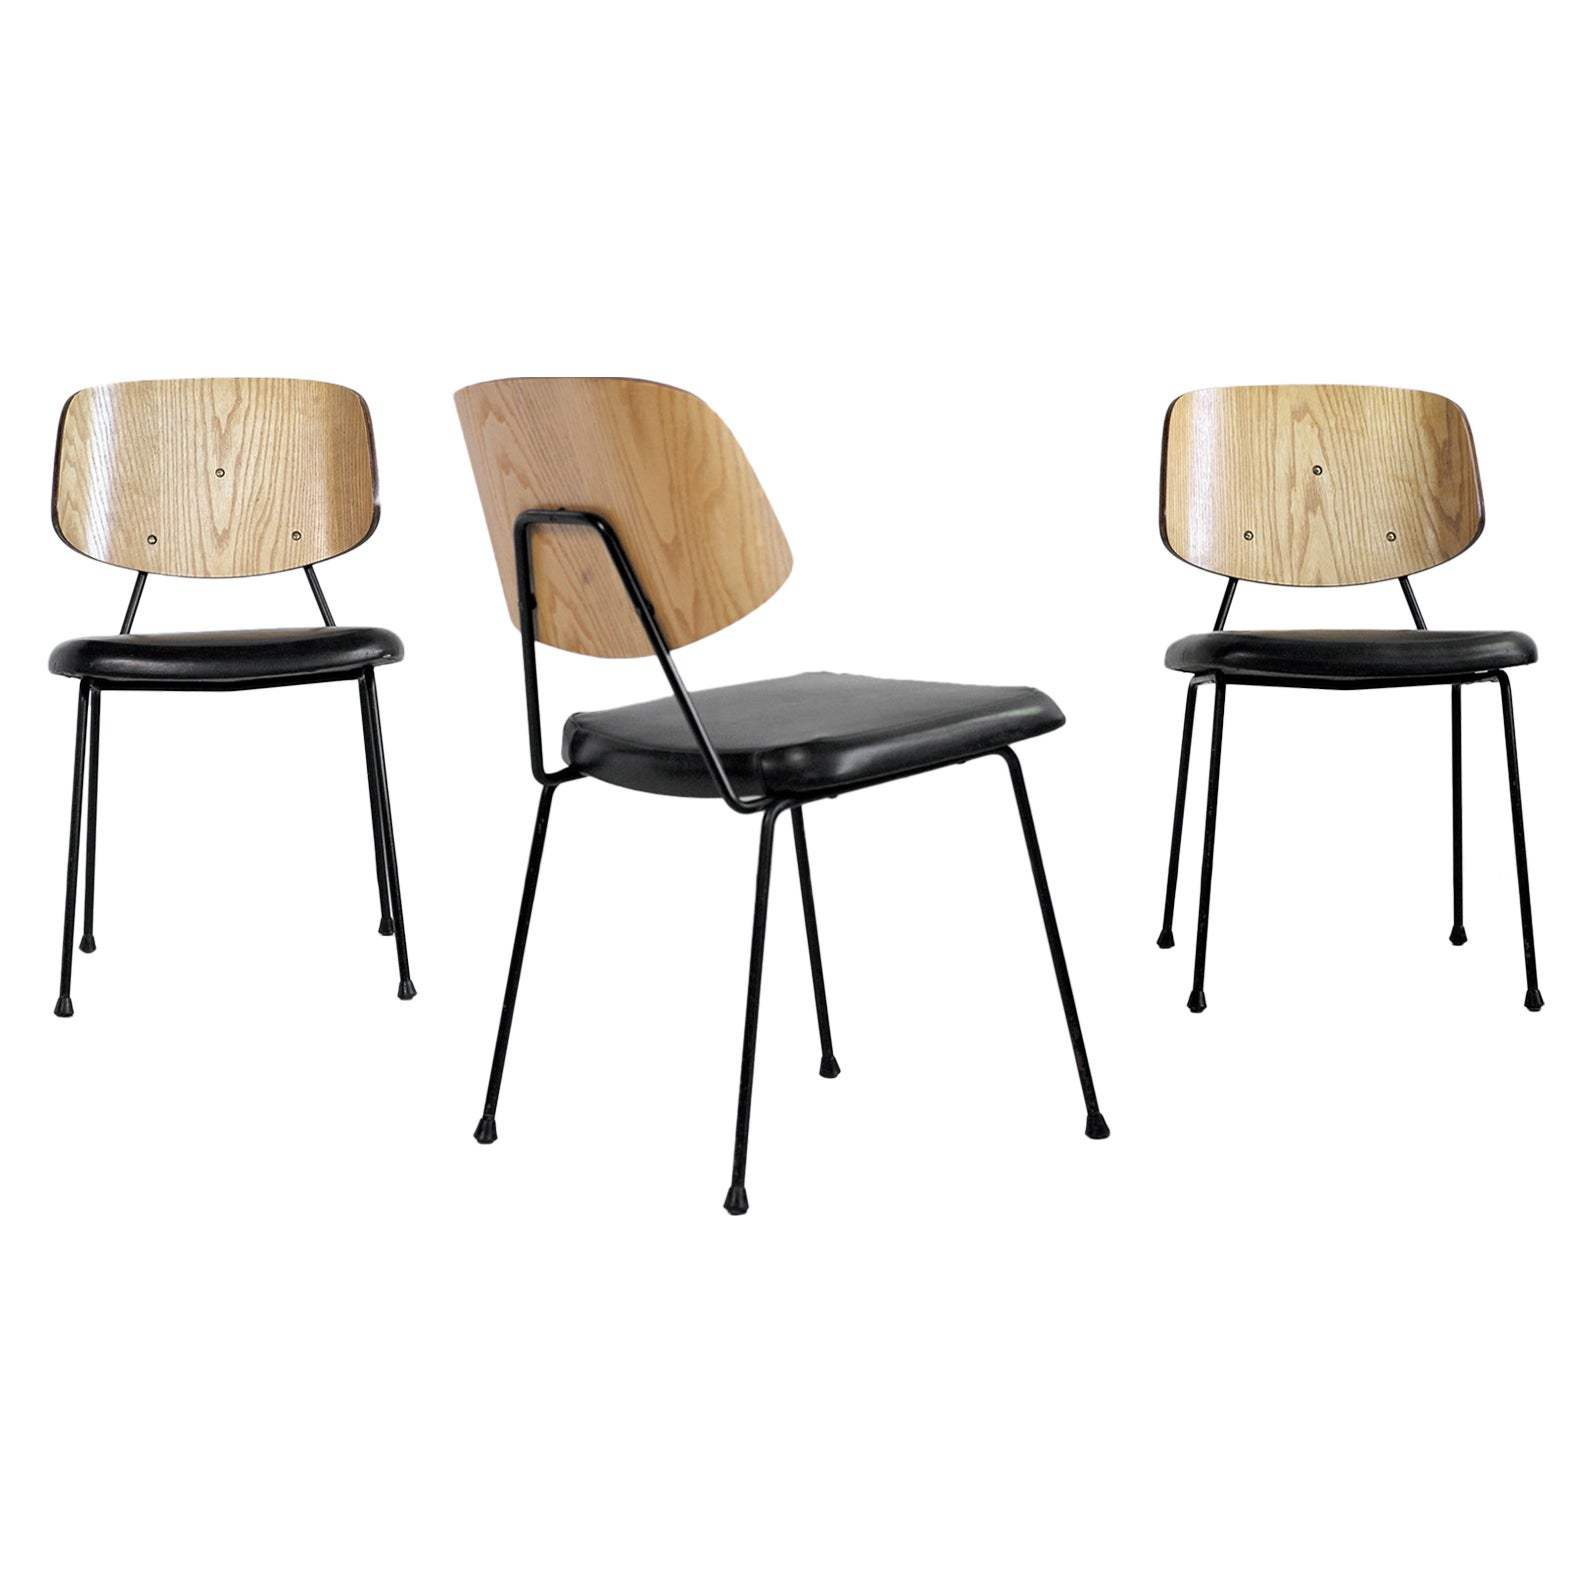 Thonet, Set of 3 Chairs, France, 1950